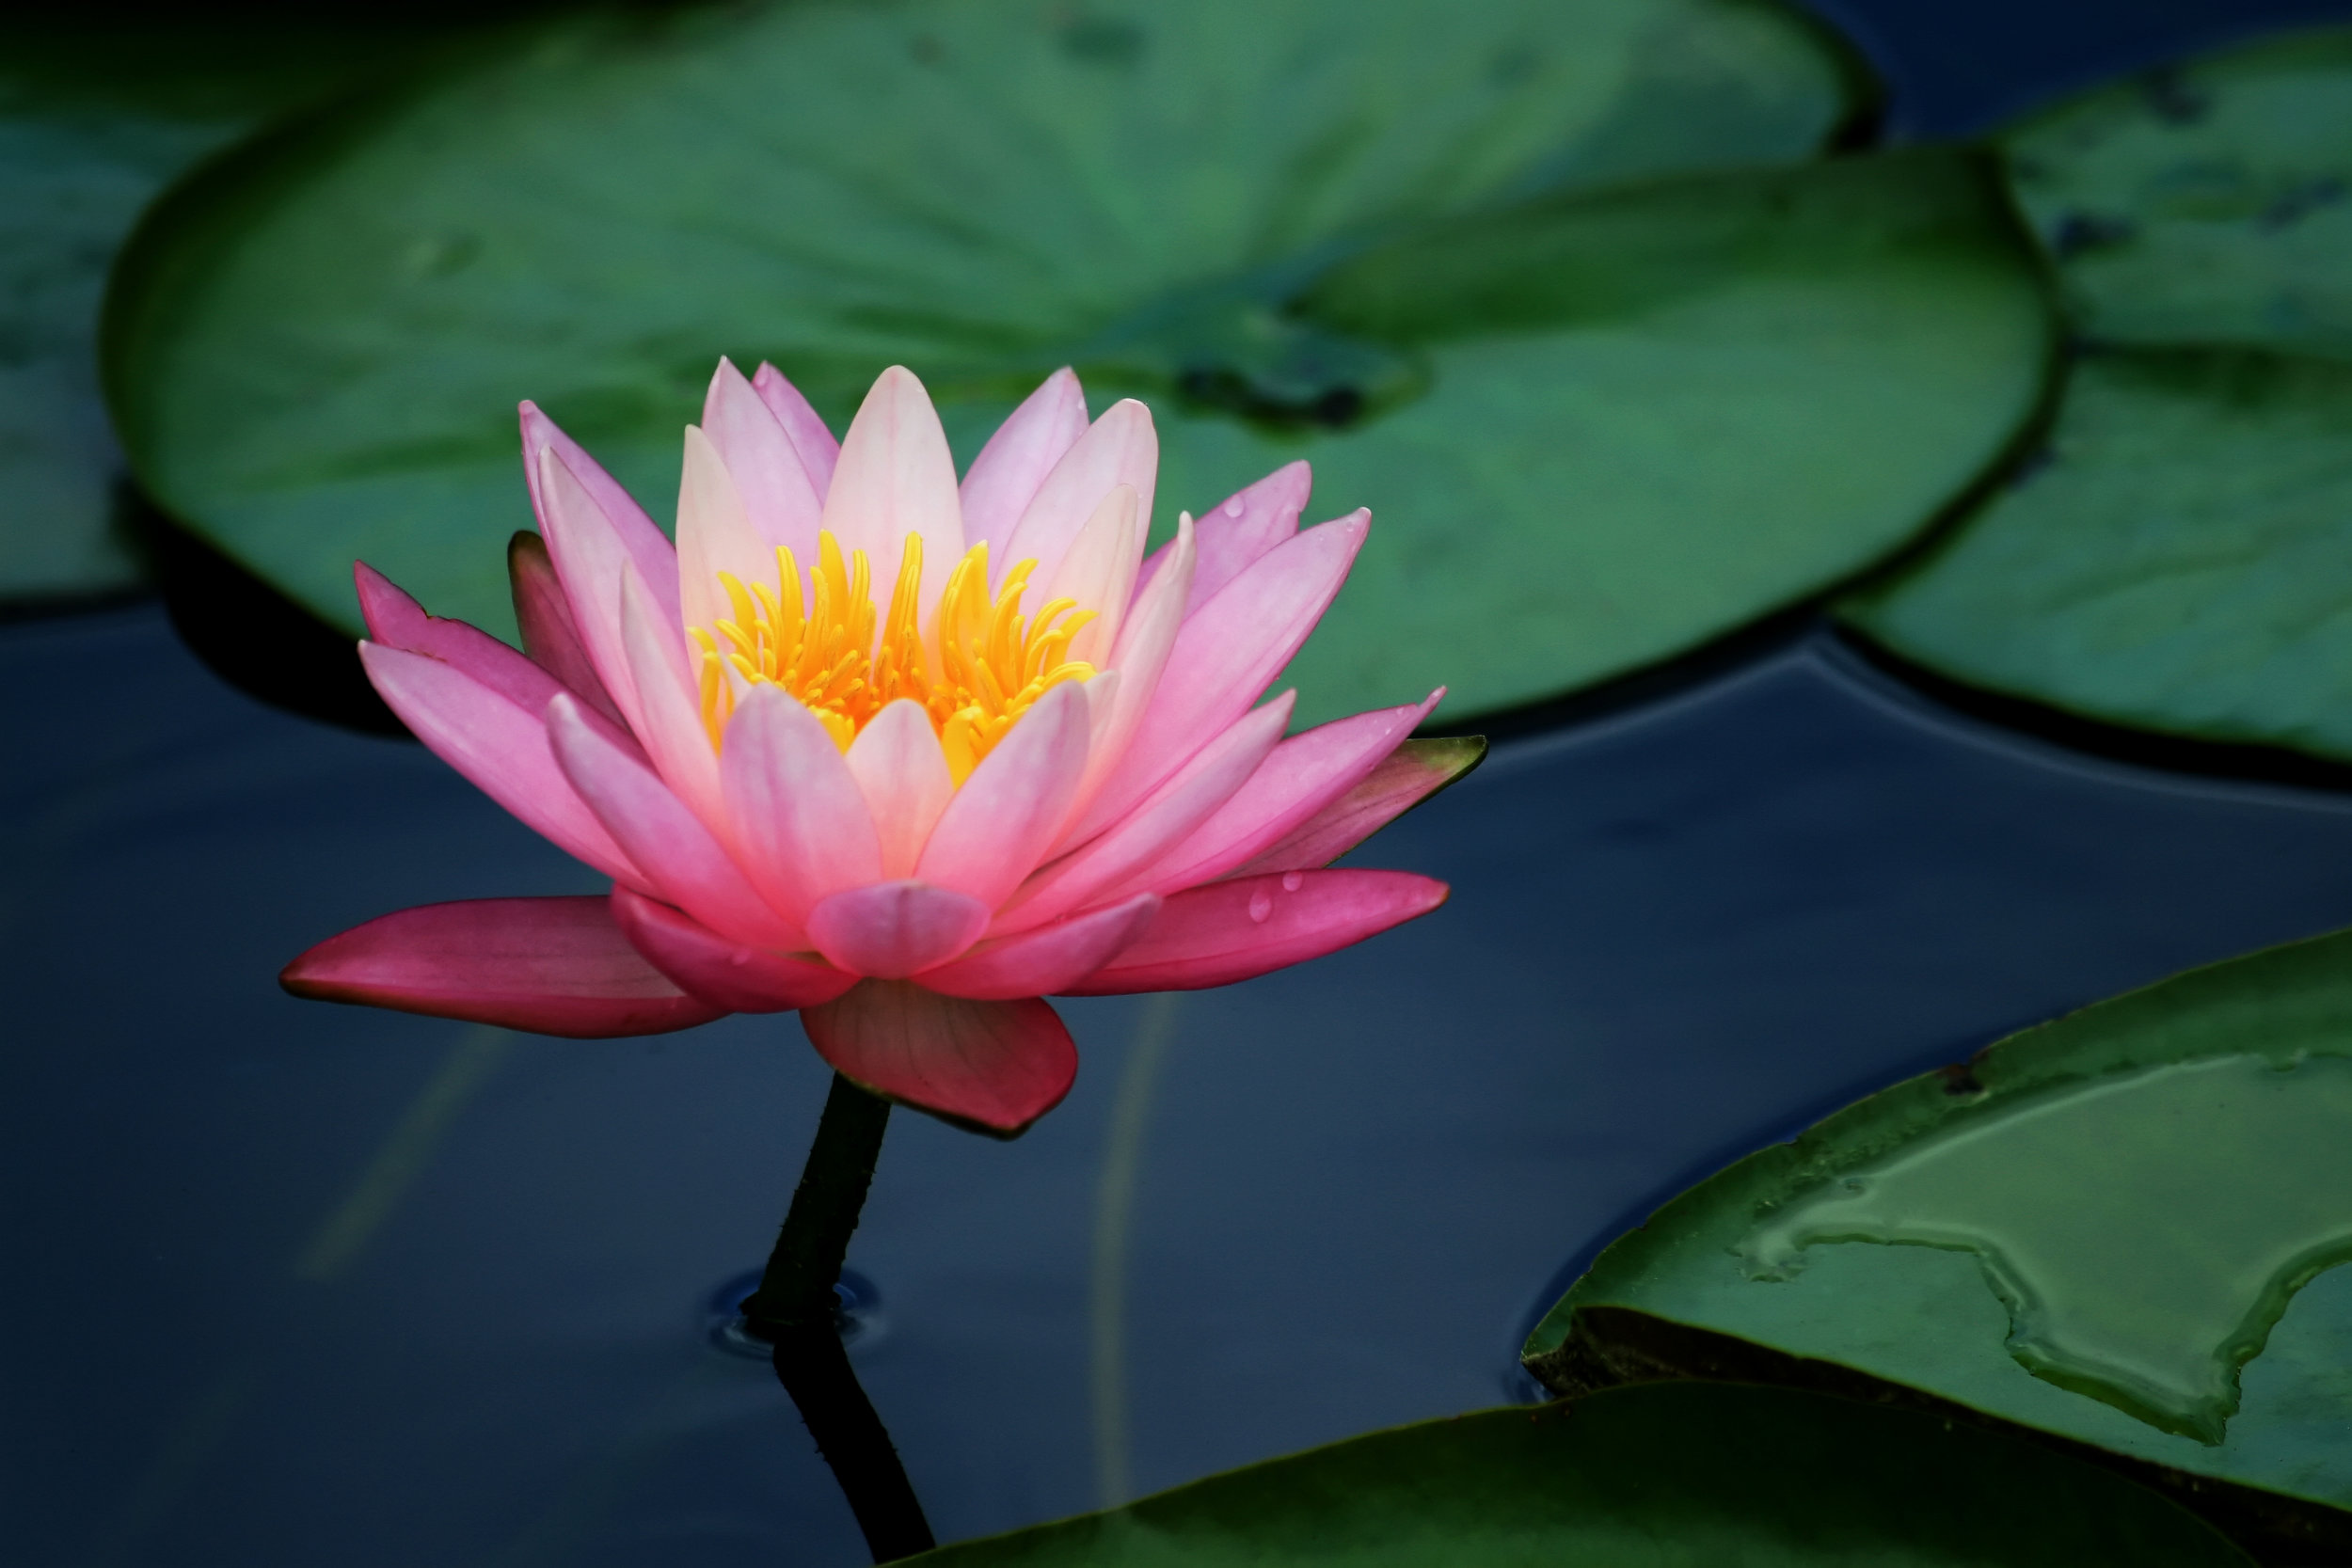 Our homes lily pad living lily pads and lotus flower 1725790g izmirmasajfo